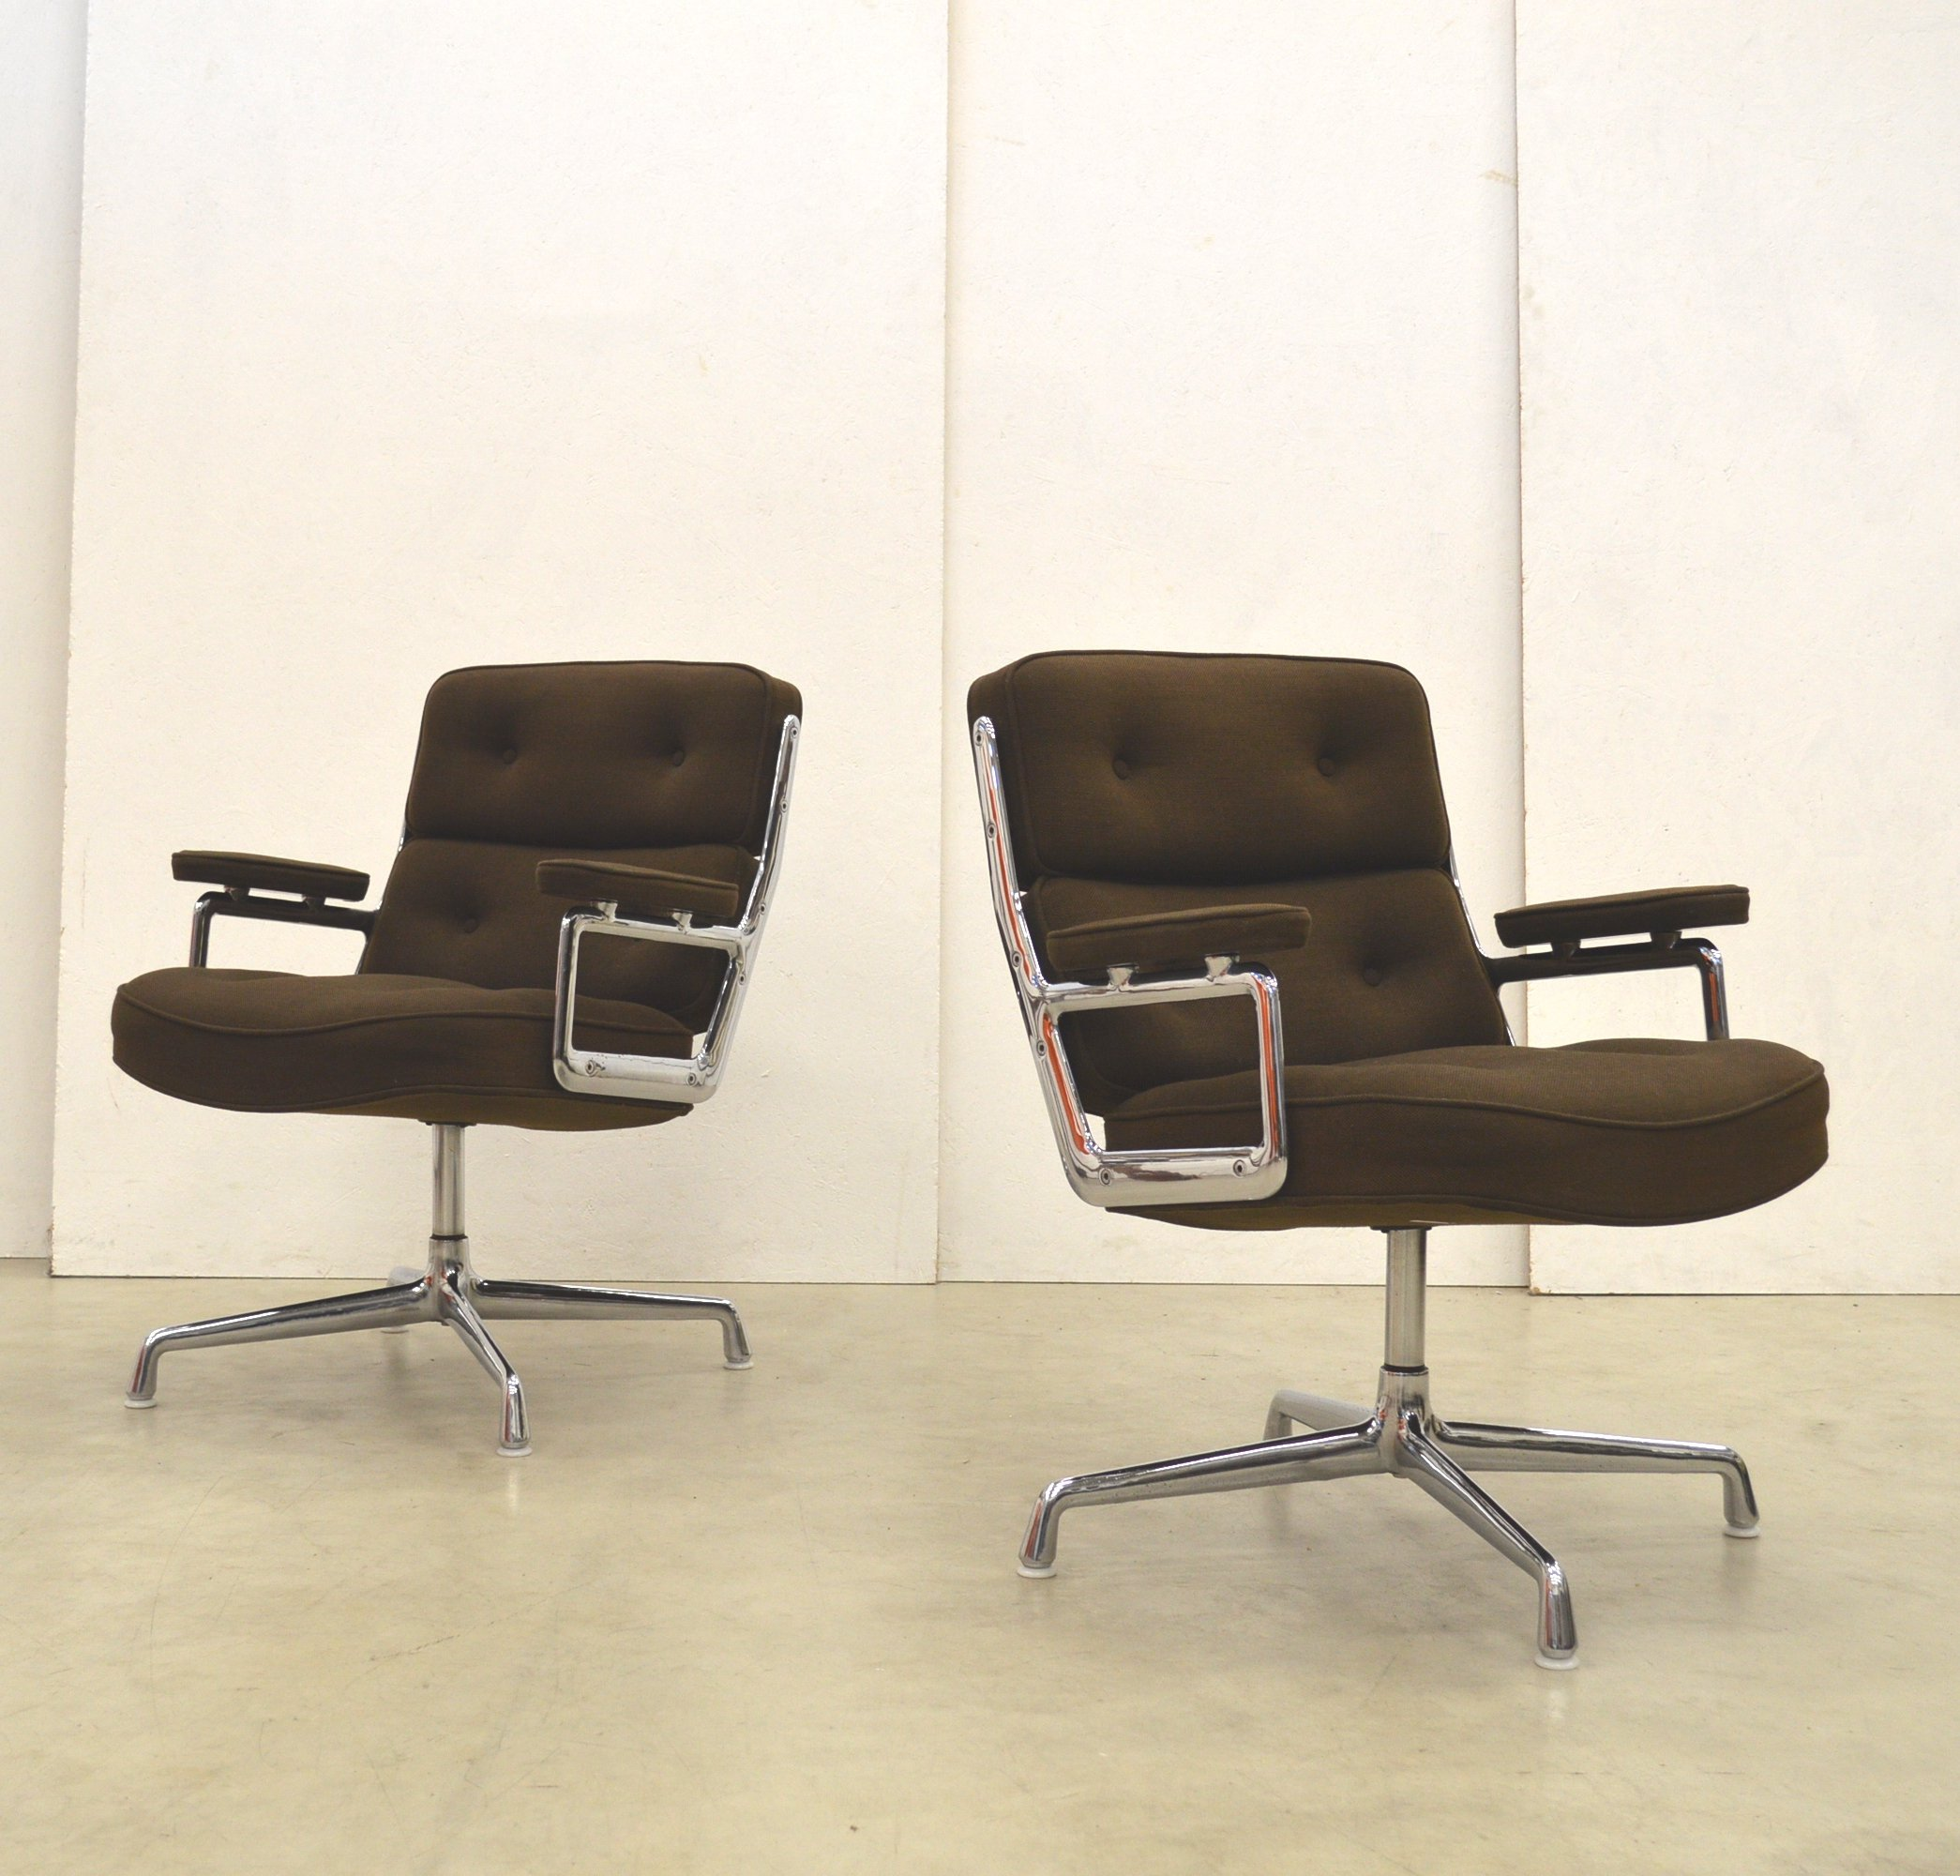 Eames 108 2 X Es108 Office Chair By Charles Ray Eames For Herman Miller 1970s